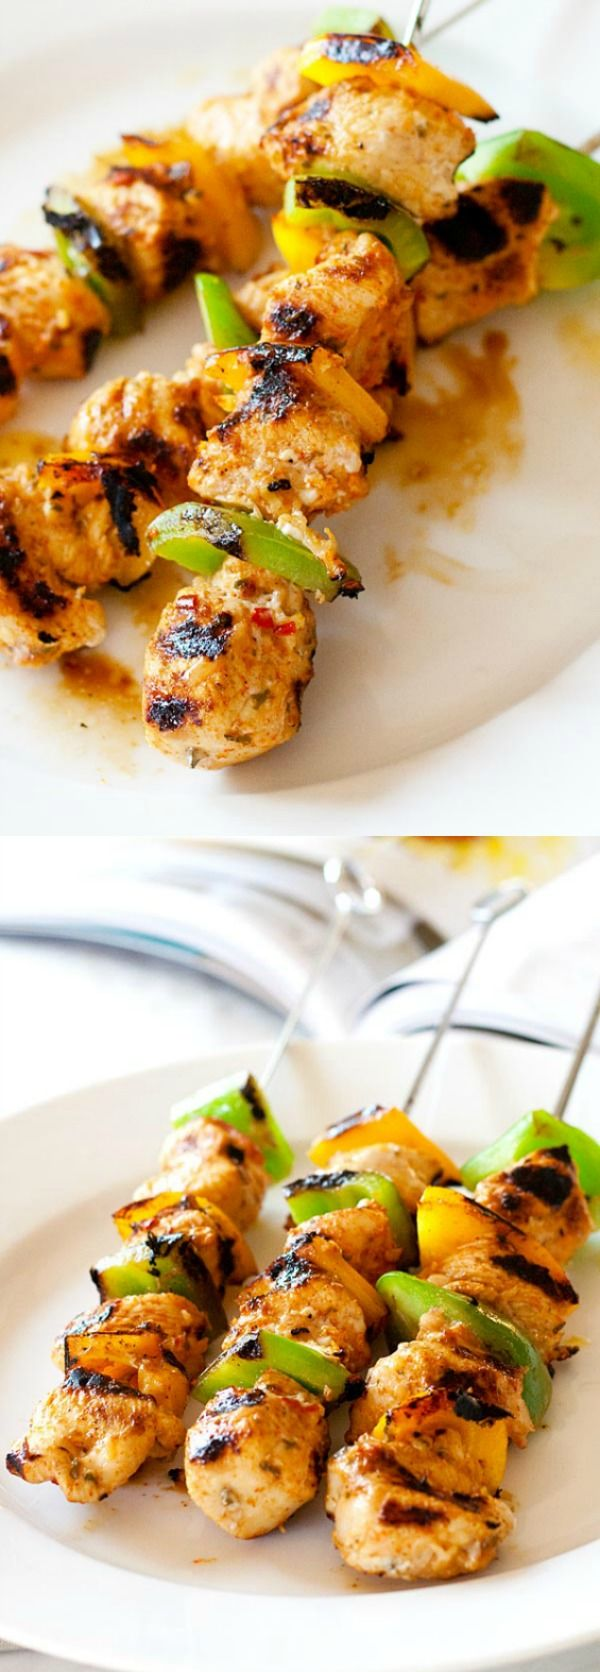 Chicken kebab - marinated with olive oil, lemon juice, cumin and paprika, this chicken kebab recipe is the BEST   rasamalaysia.com